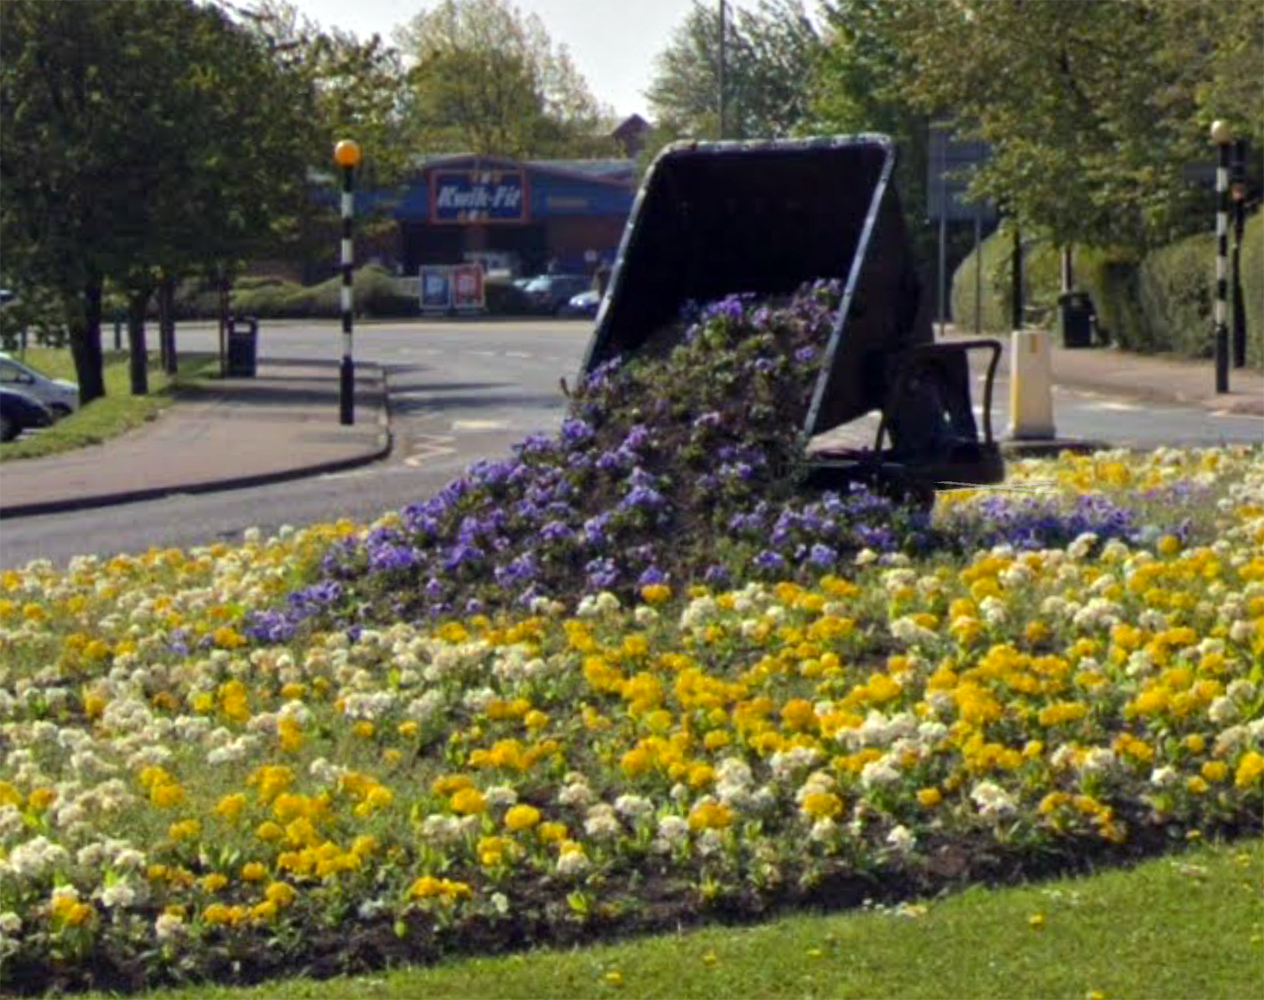 Hudson tipper wagon used at flower container on roundabout